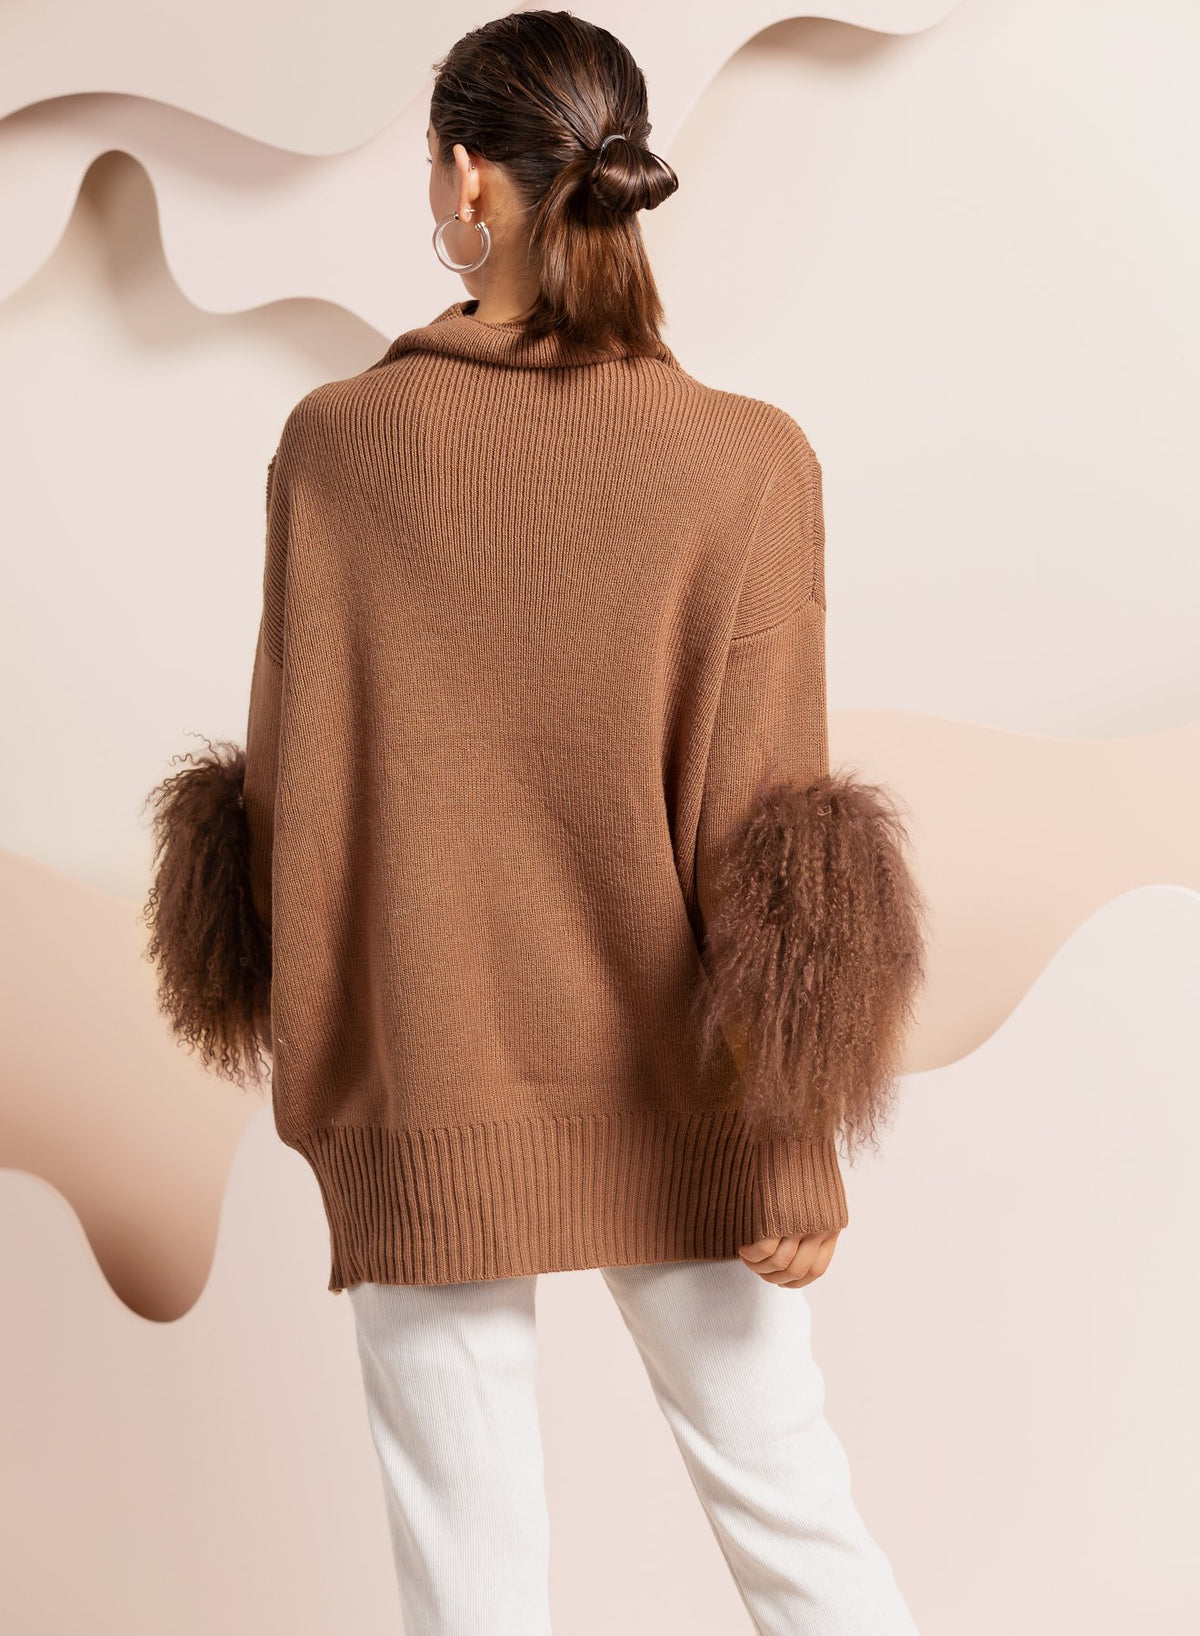 Bubish Luxe Adella Knit Jumper Sweater